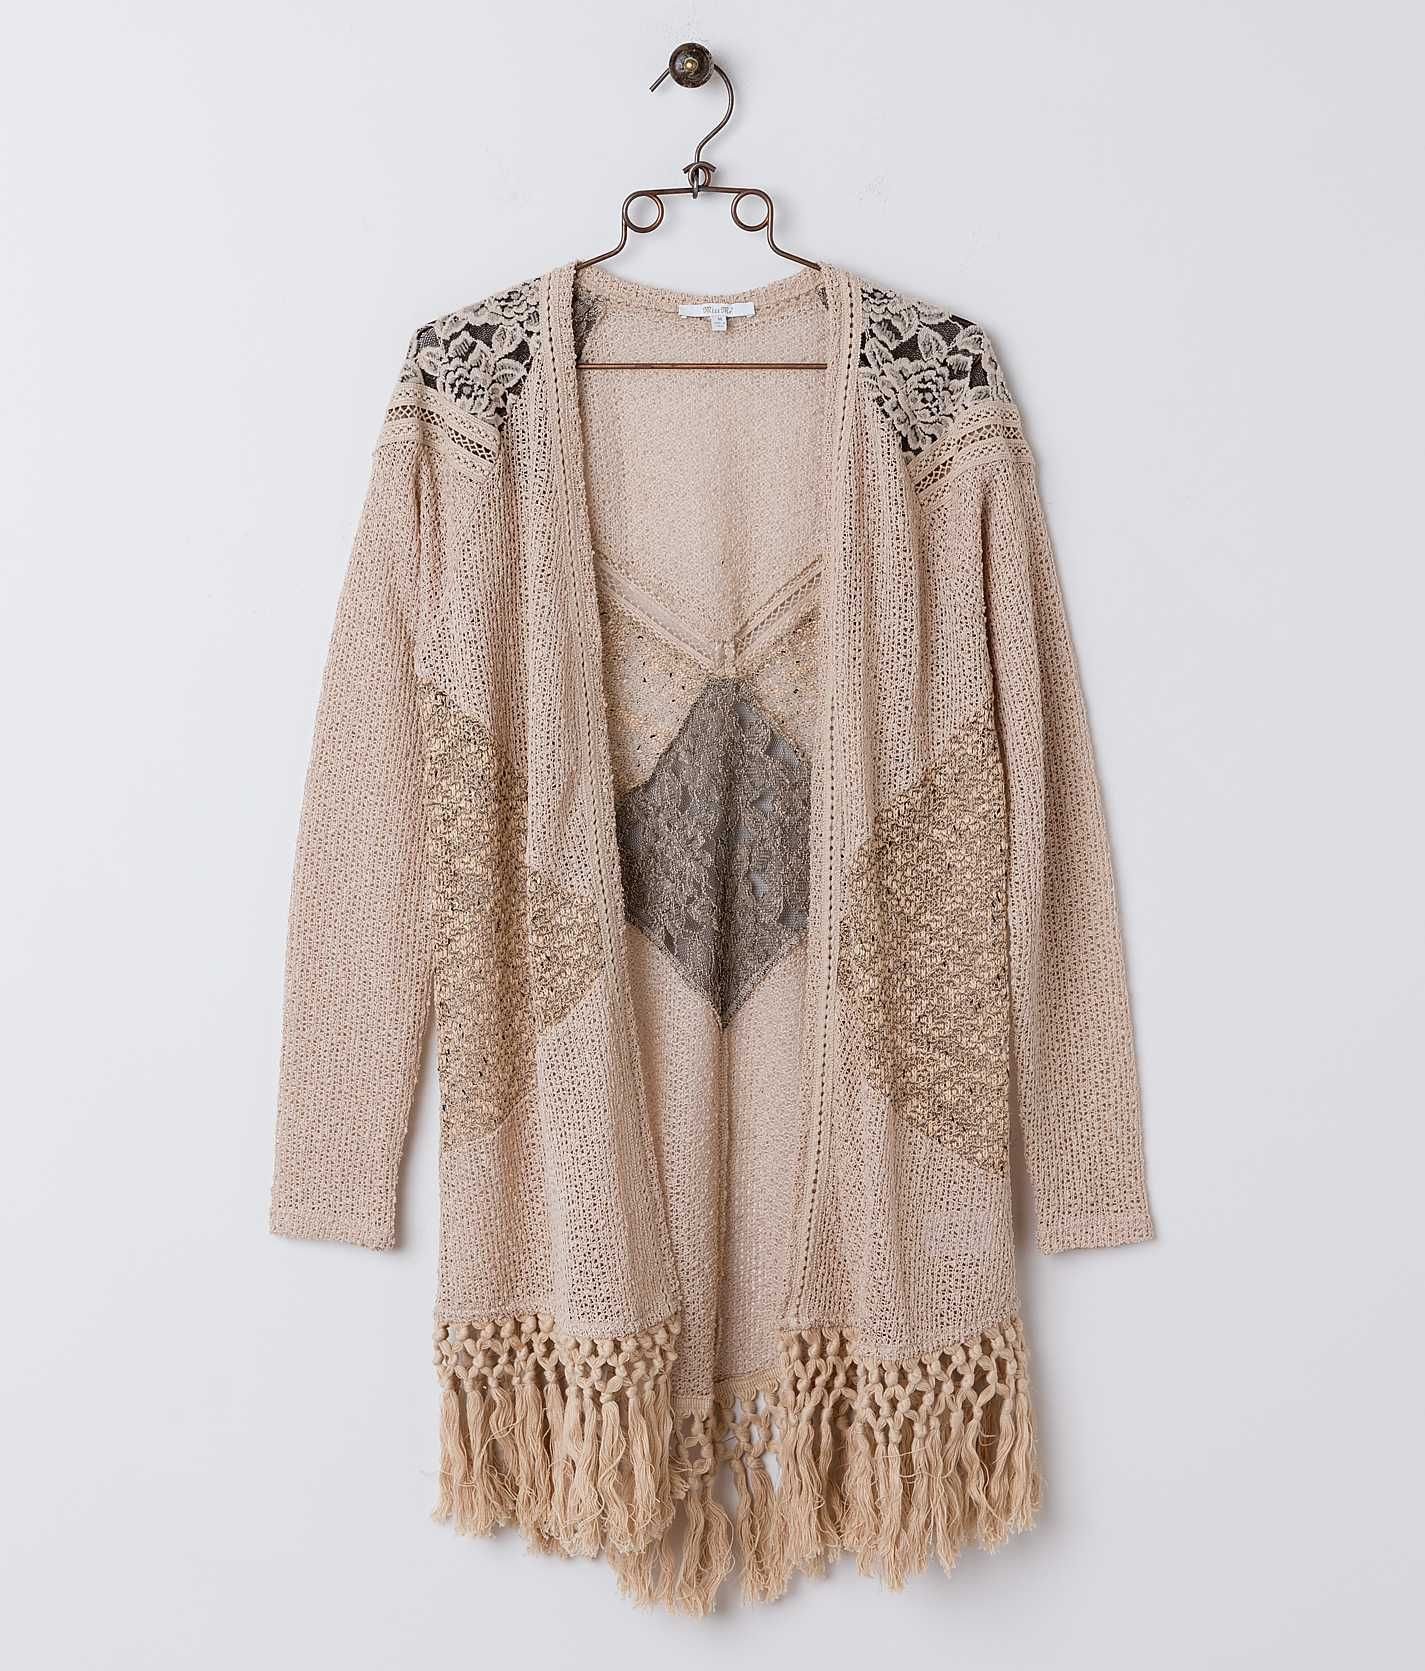 53882d4c0a New arrival at Billy s Western Wear! Miss Me MDJ173L in Taupe ...